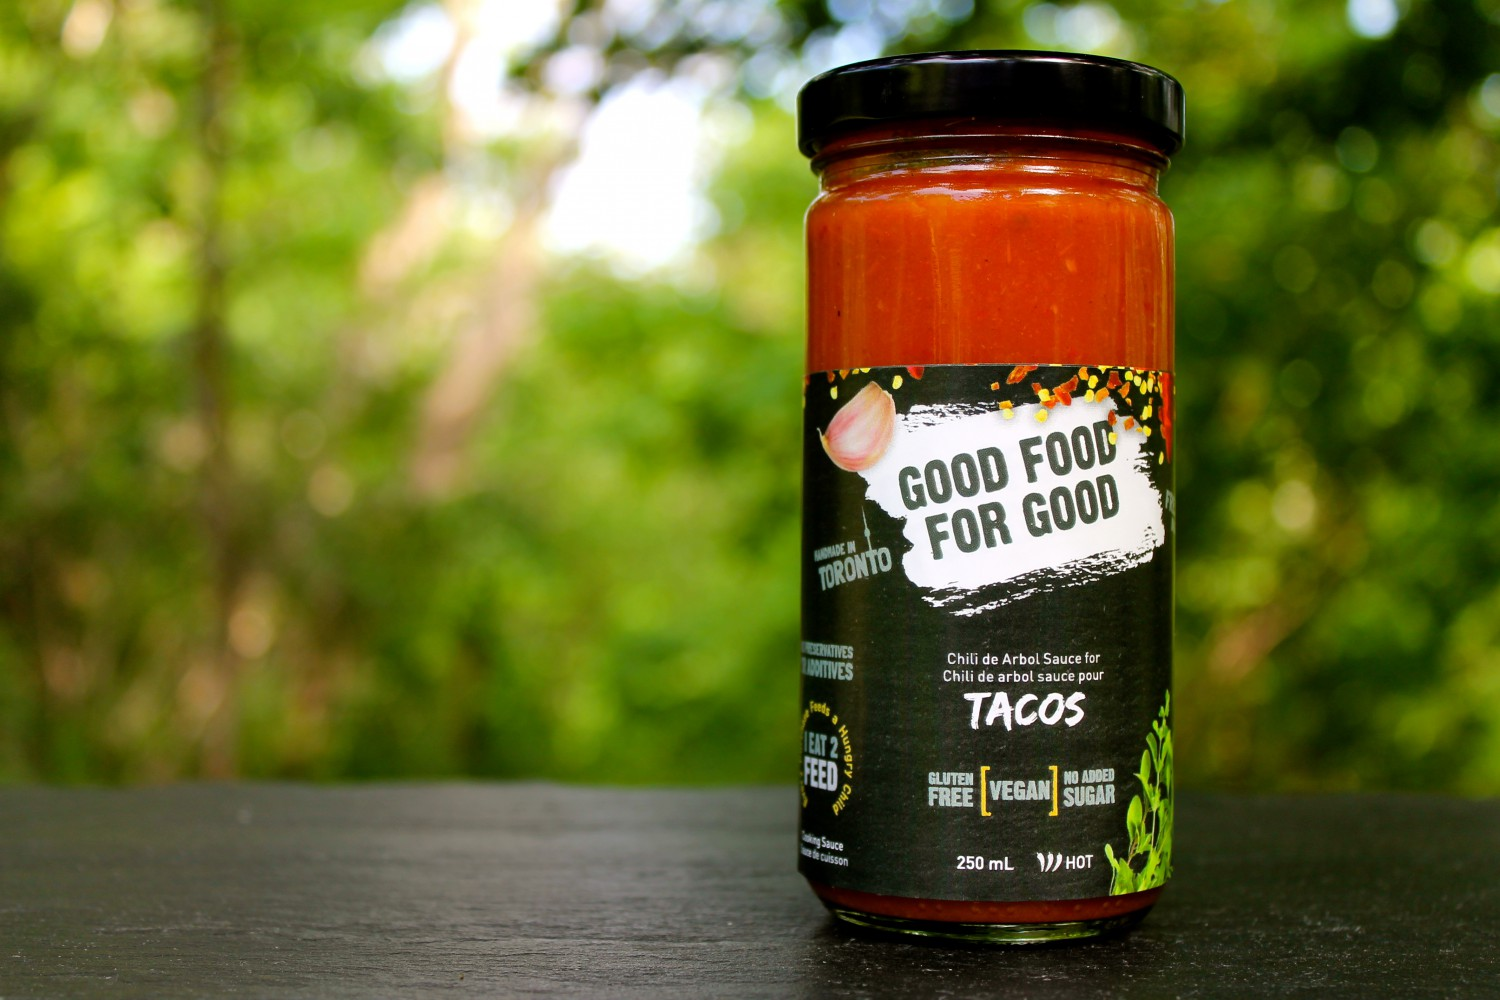 GOOD FOOD FOR GOOD Chile de Arbol Taco Sauce - Fresh Mexican Sauce